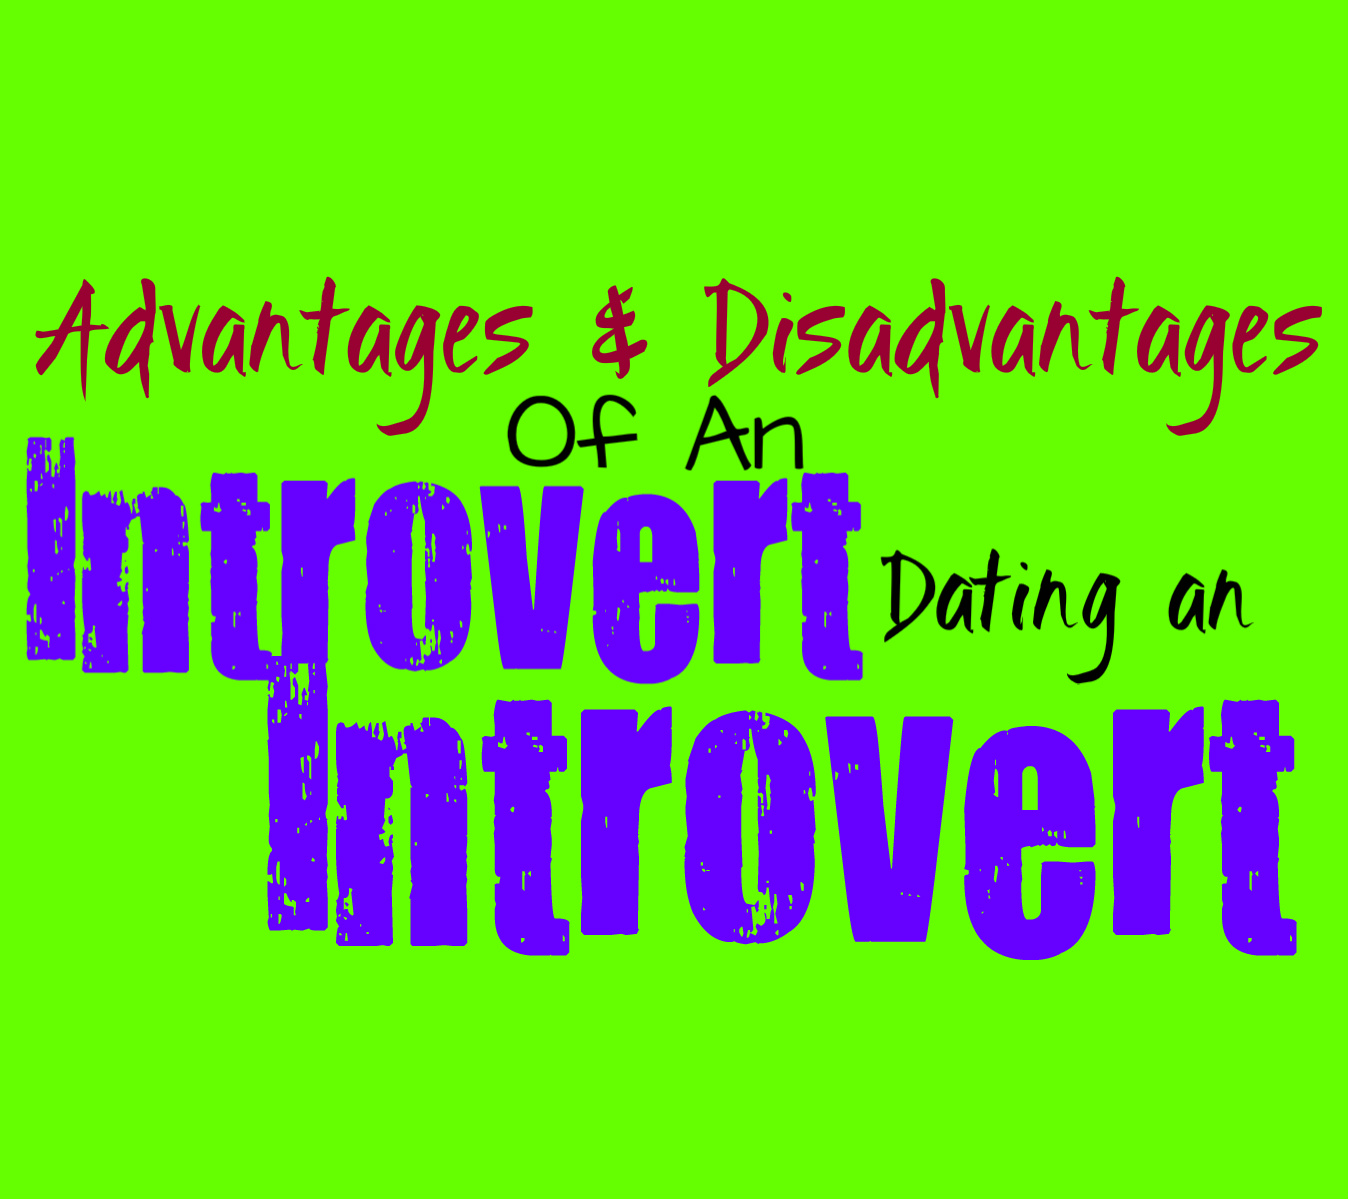 Dating an introvert personality characteristics 9